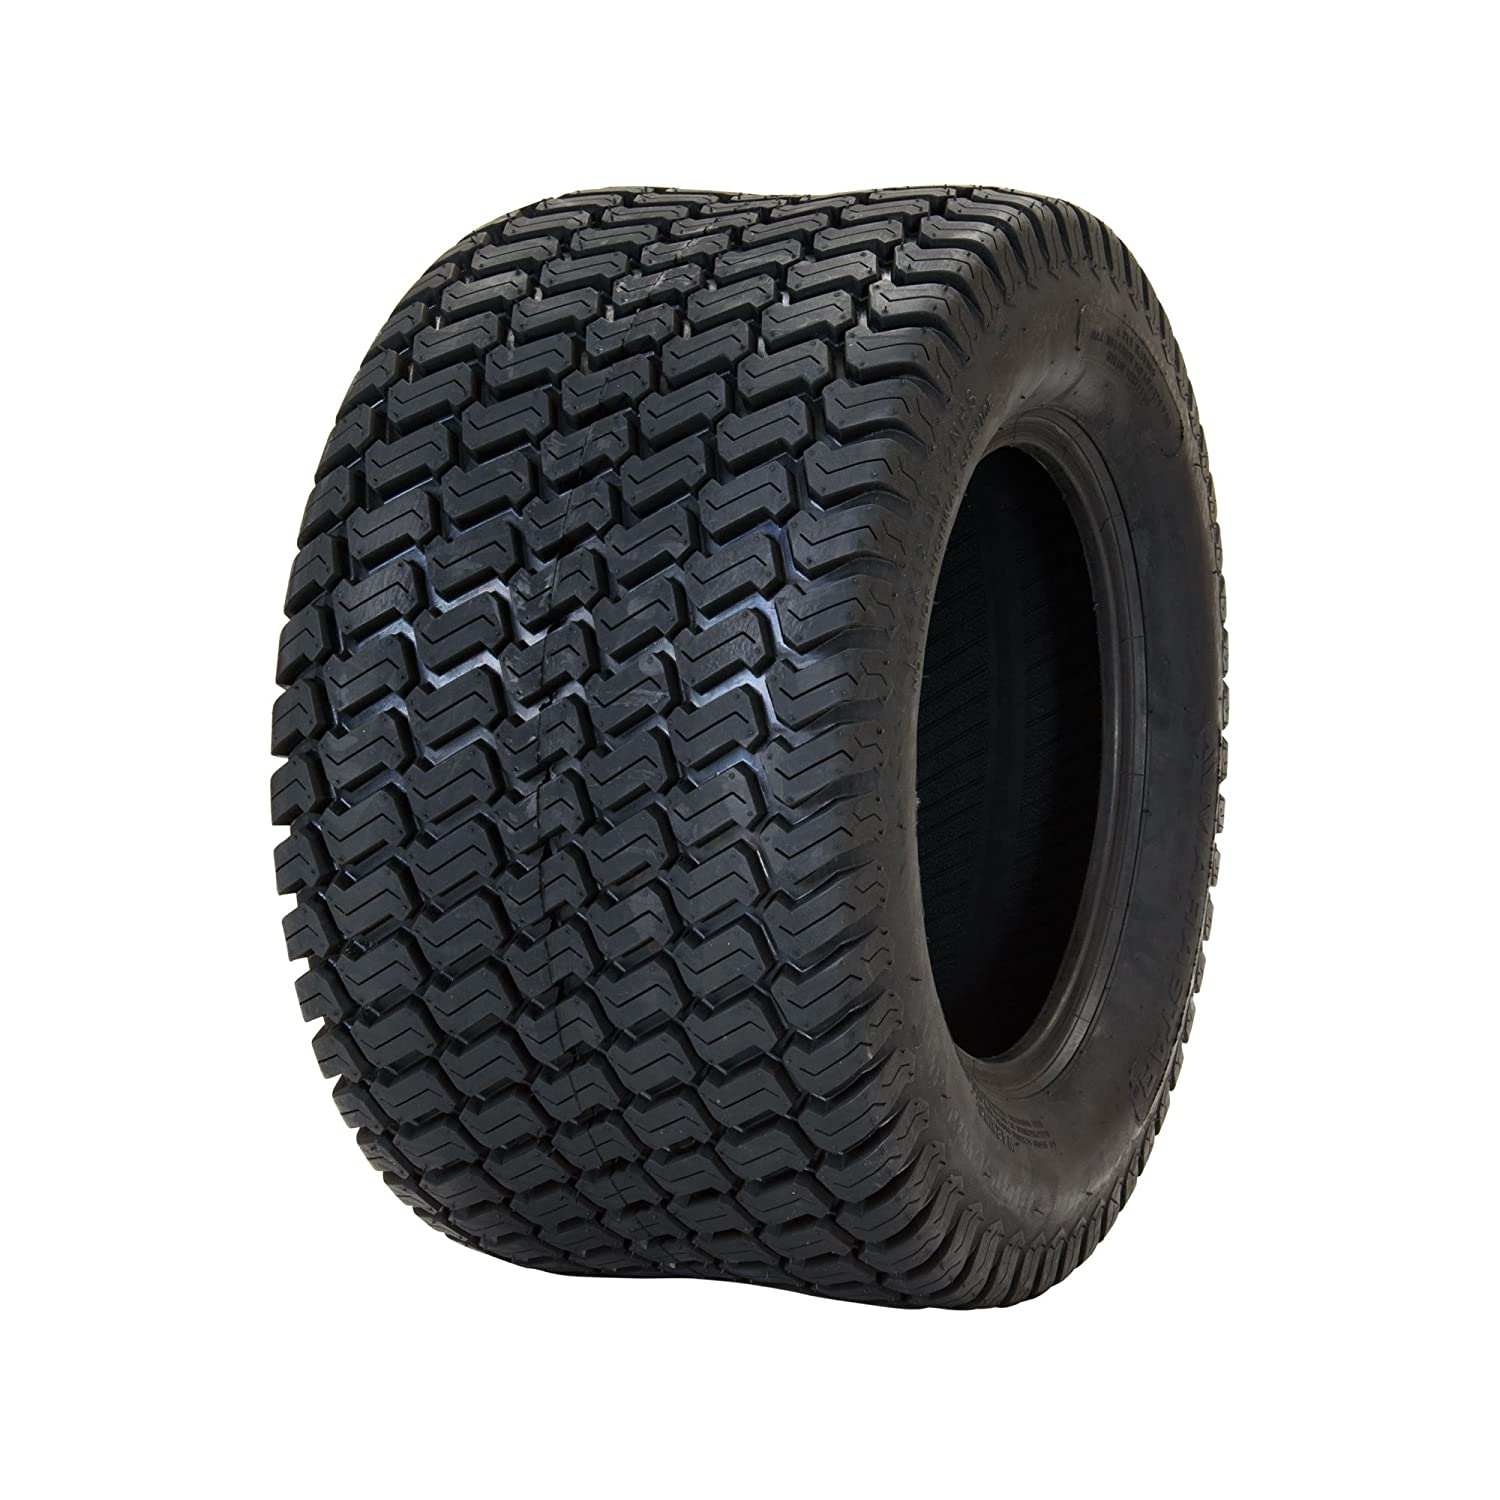 MARASTAR 24122 24x12.00-12 Replacement Lawnmower Tire Only